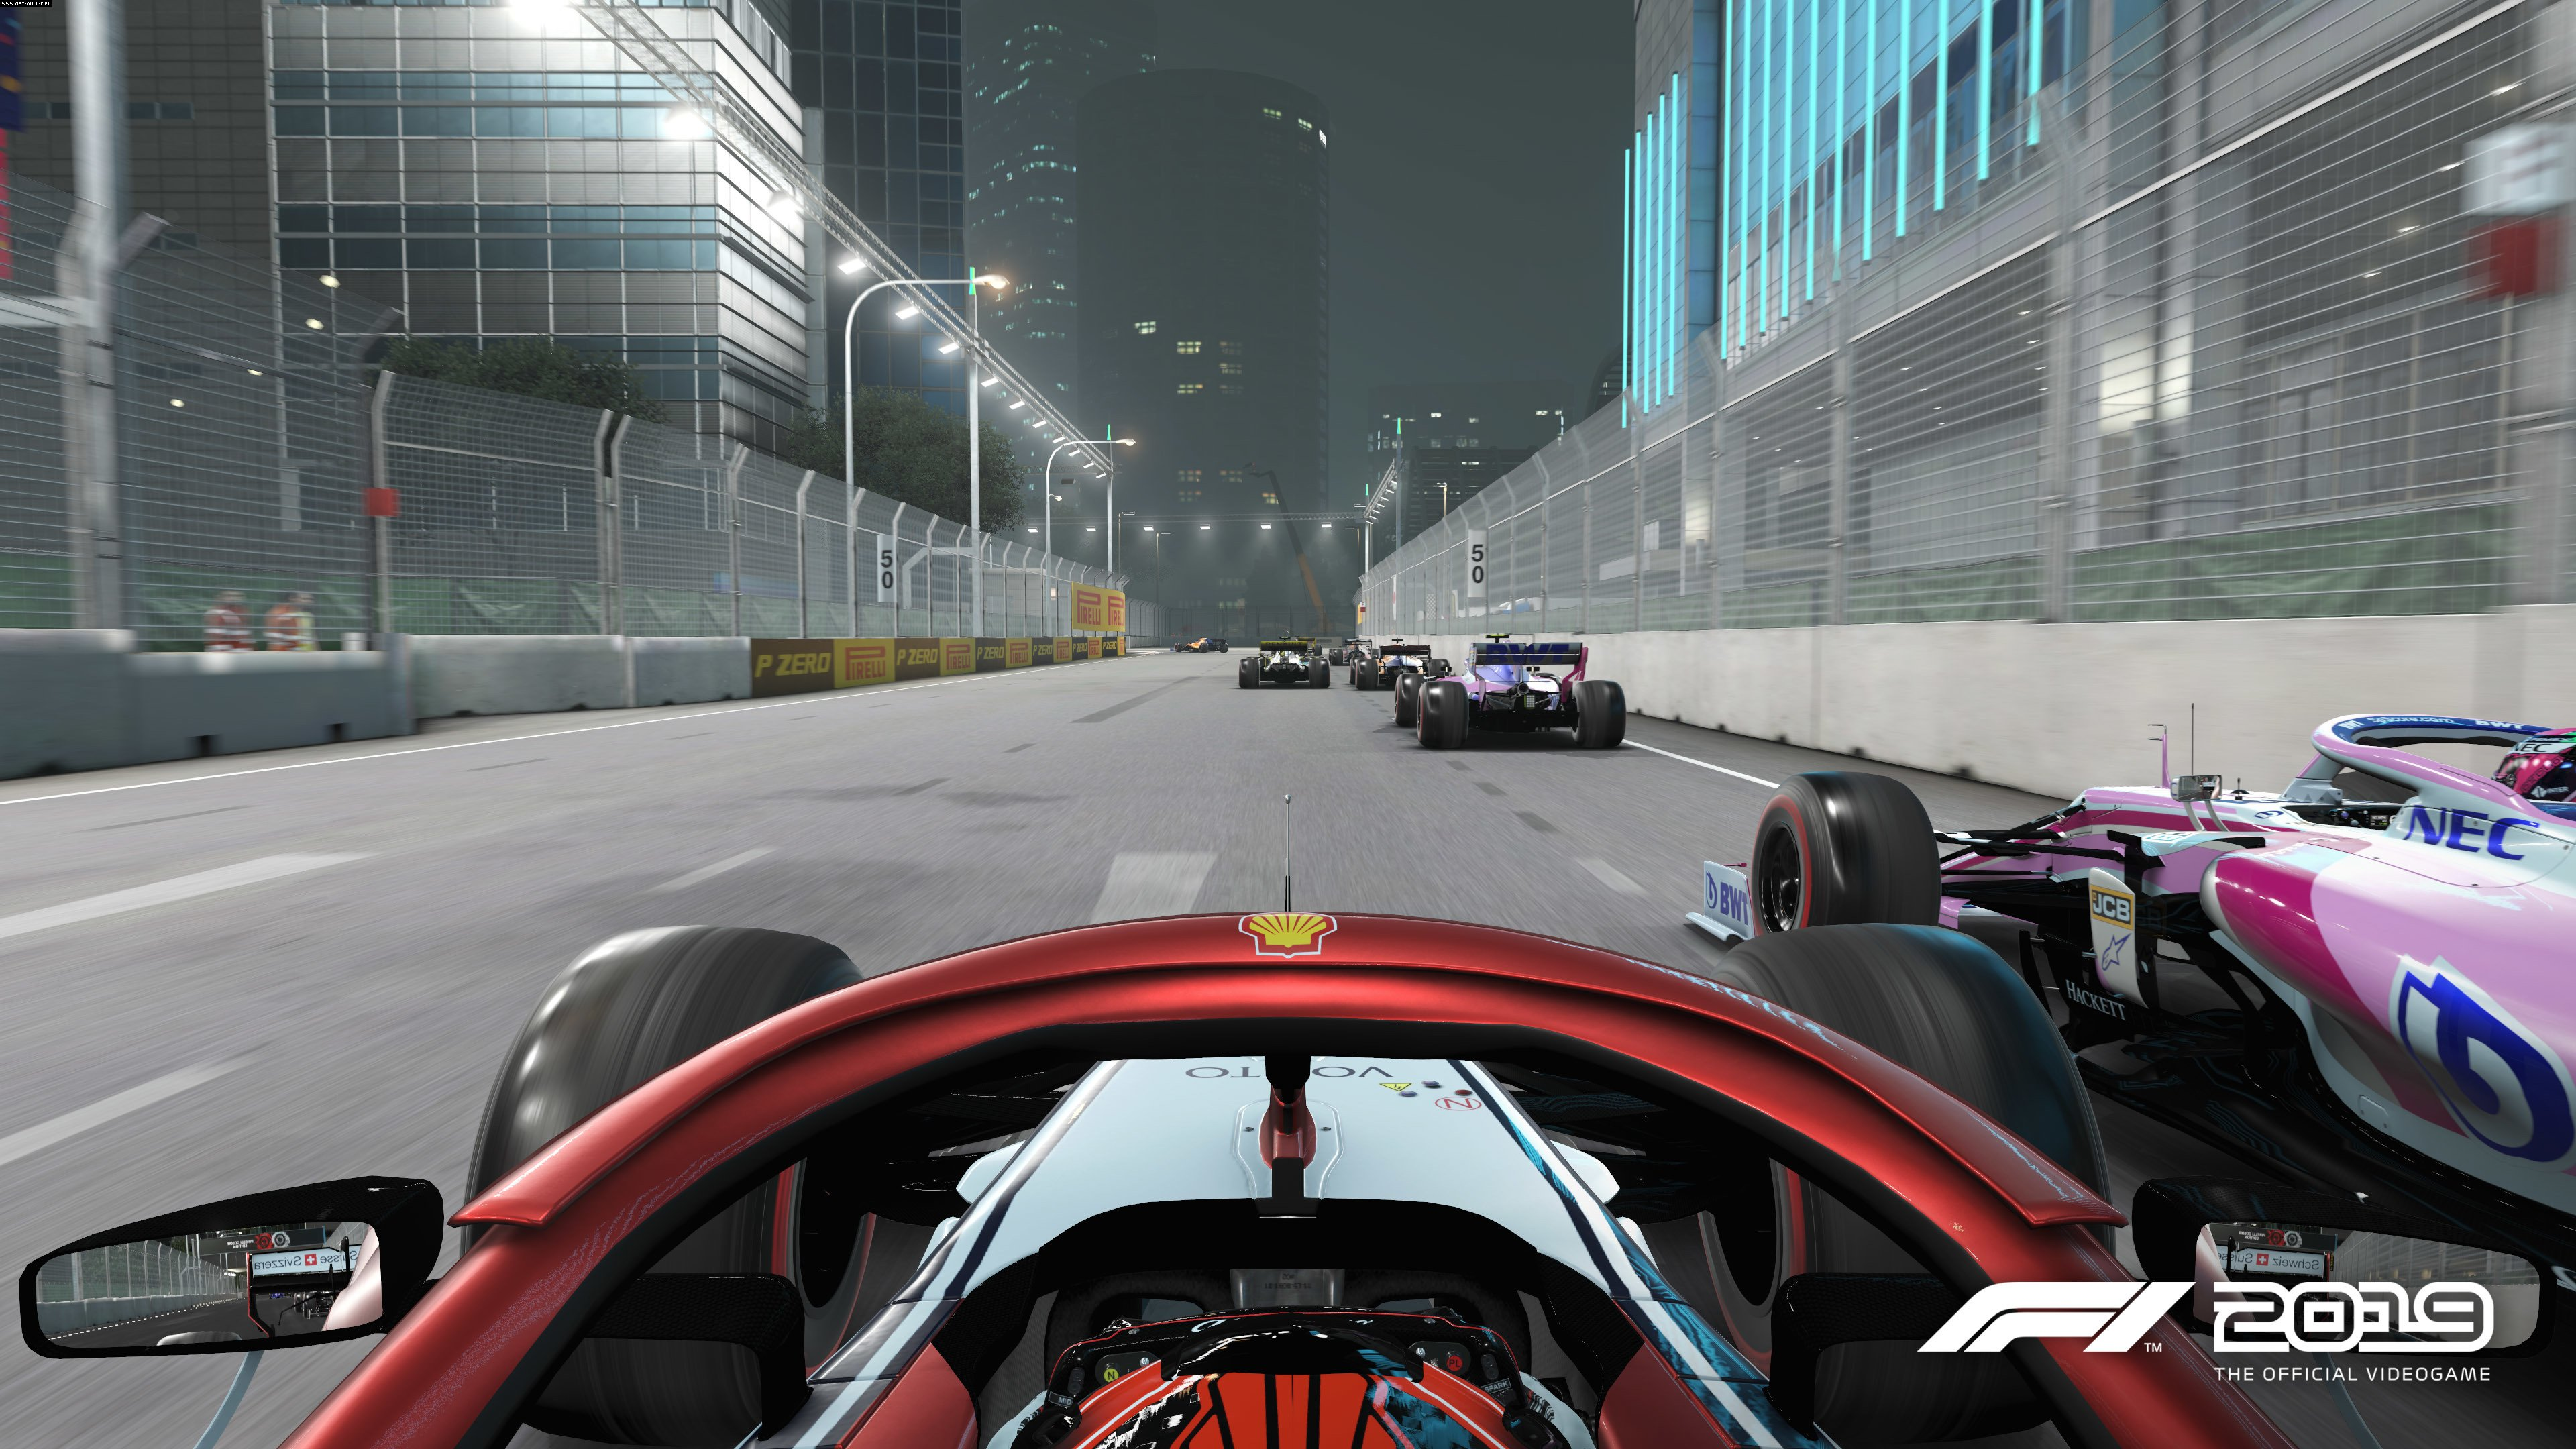 F1 2019 PC, PS4, XONE Gry Screen 37/87, Codemasters Software